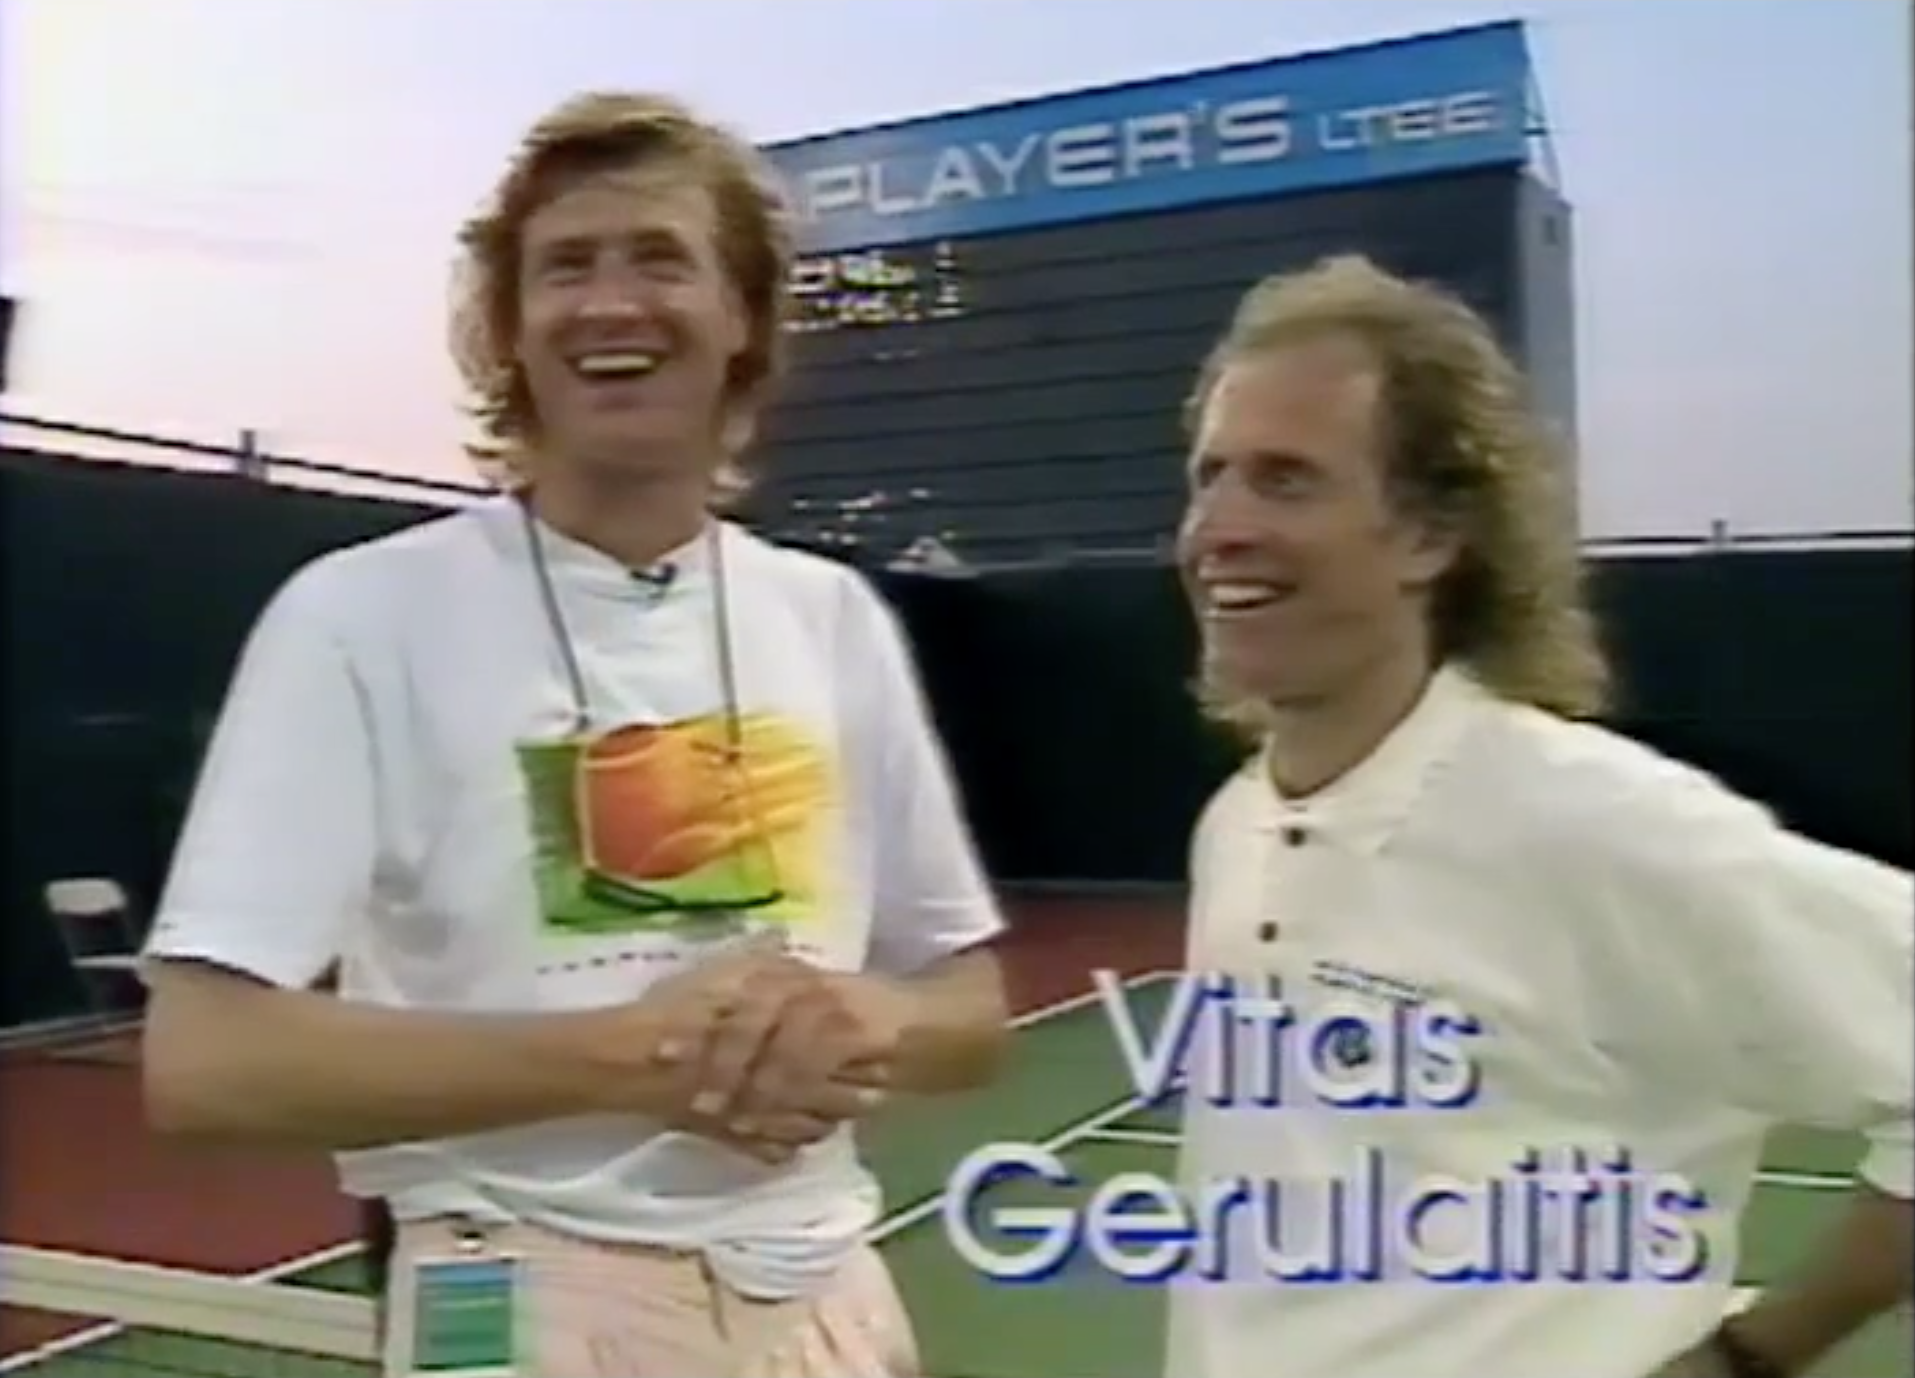 Having a laugh with tennis great Vitas Gerulaitis who, sadly, passed away 3 years later from carbon-monoxide poisoning.